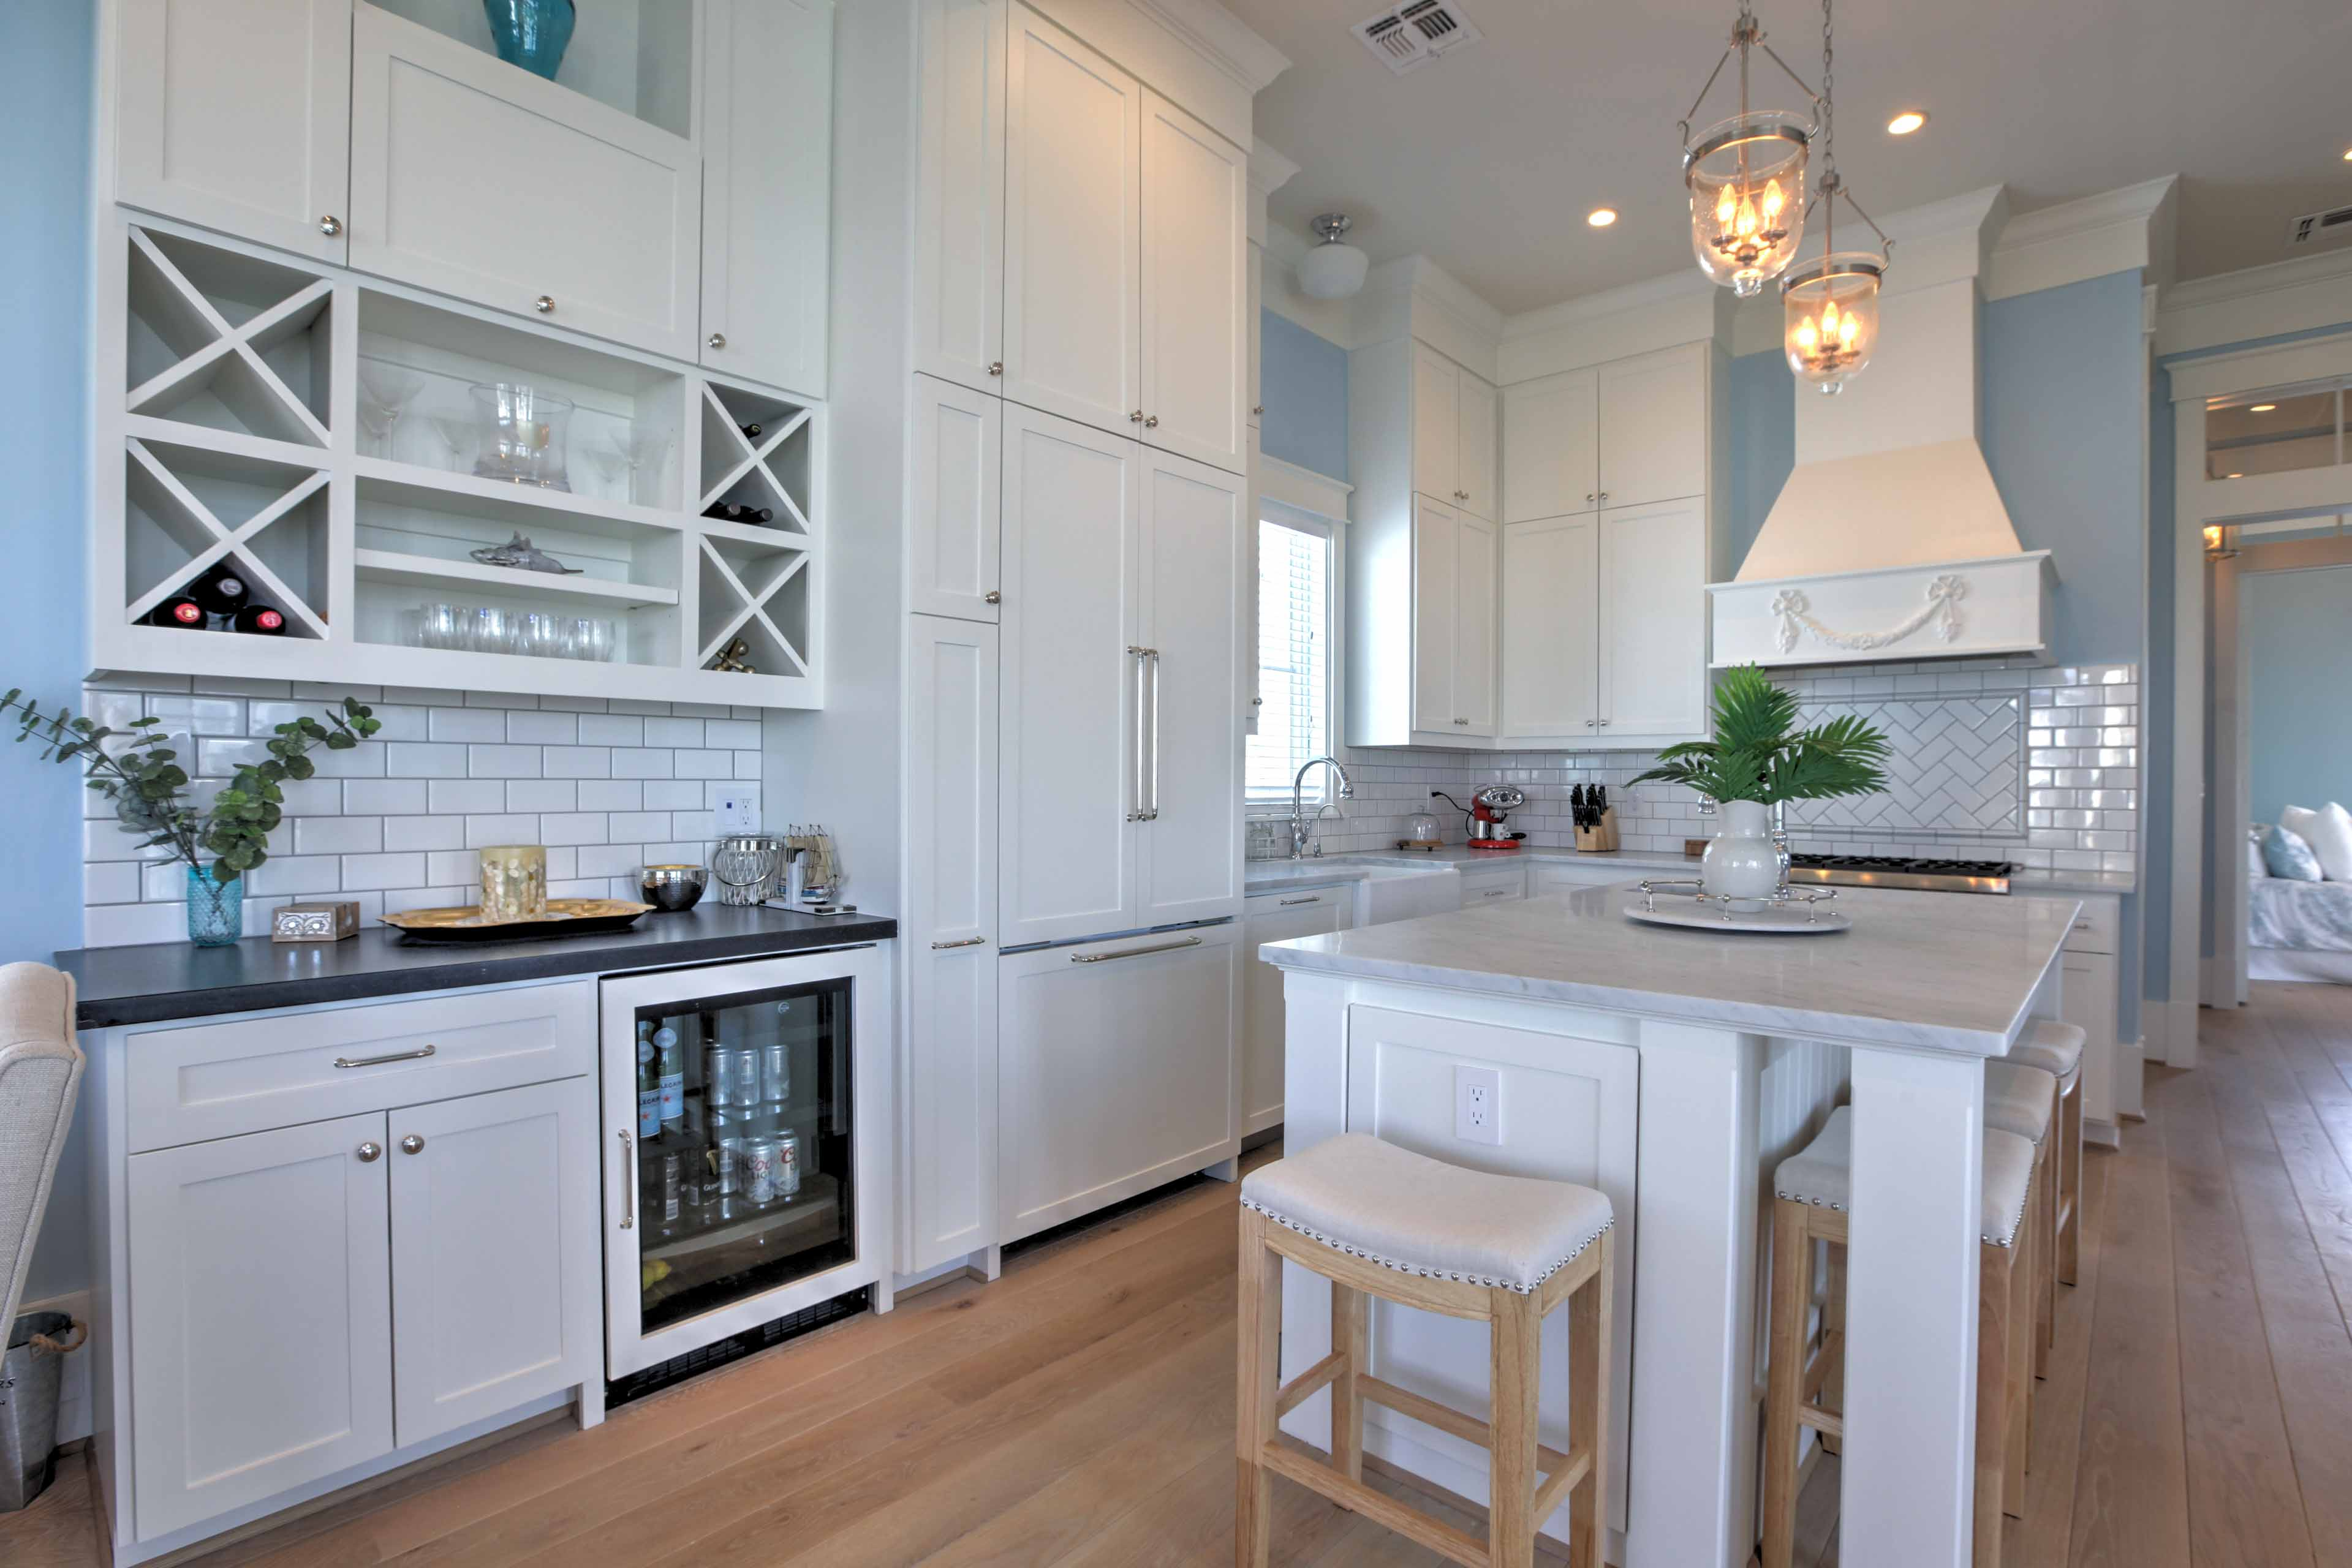 The fully equipped kitchen has everything you need to whip up your favorite recipes in the privacy of your vacation rental home.